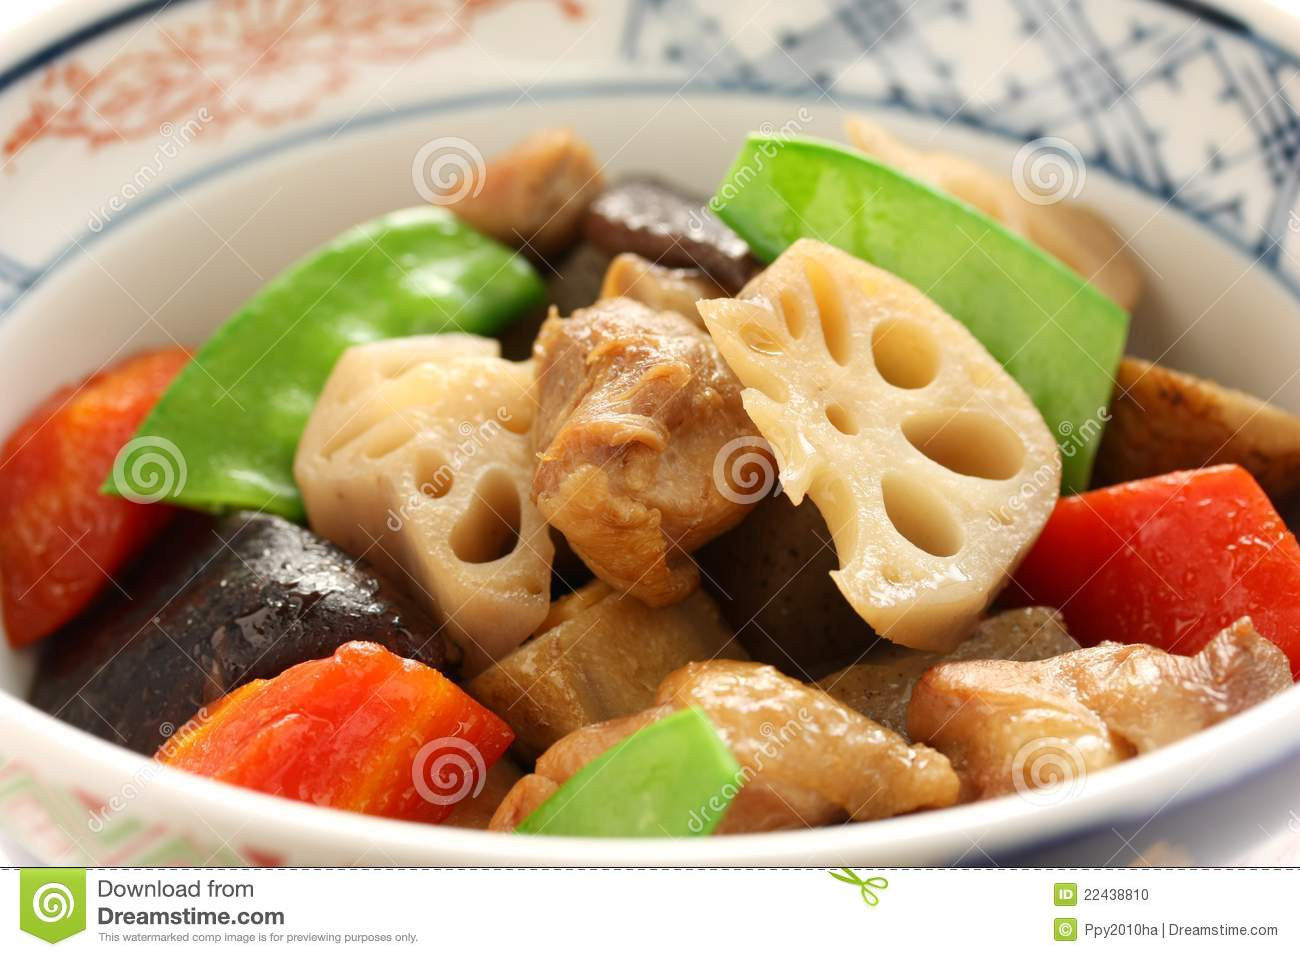 Chikuzenni japanese nimono cuisine stock photo image for Asian cuisine 08052